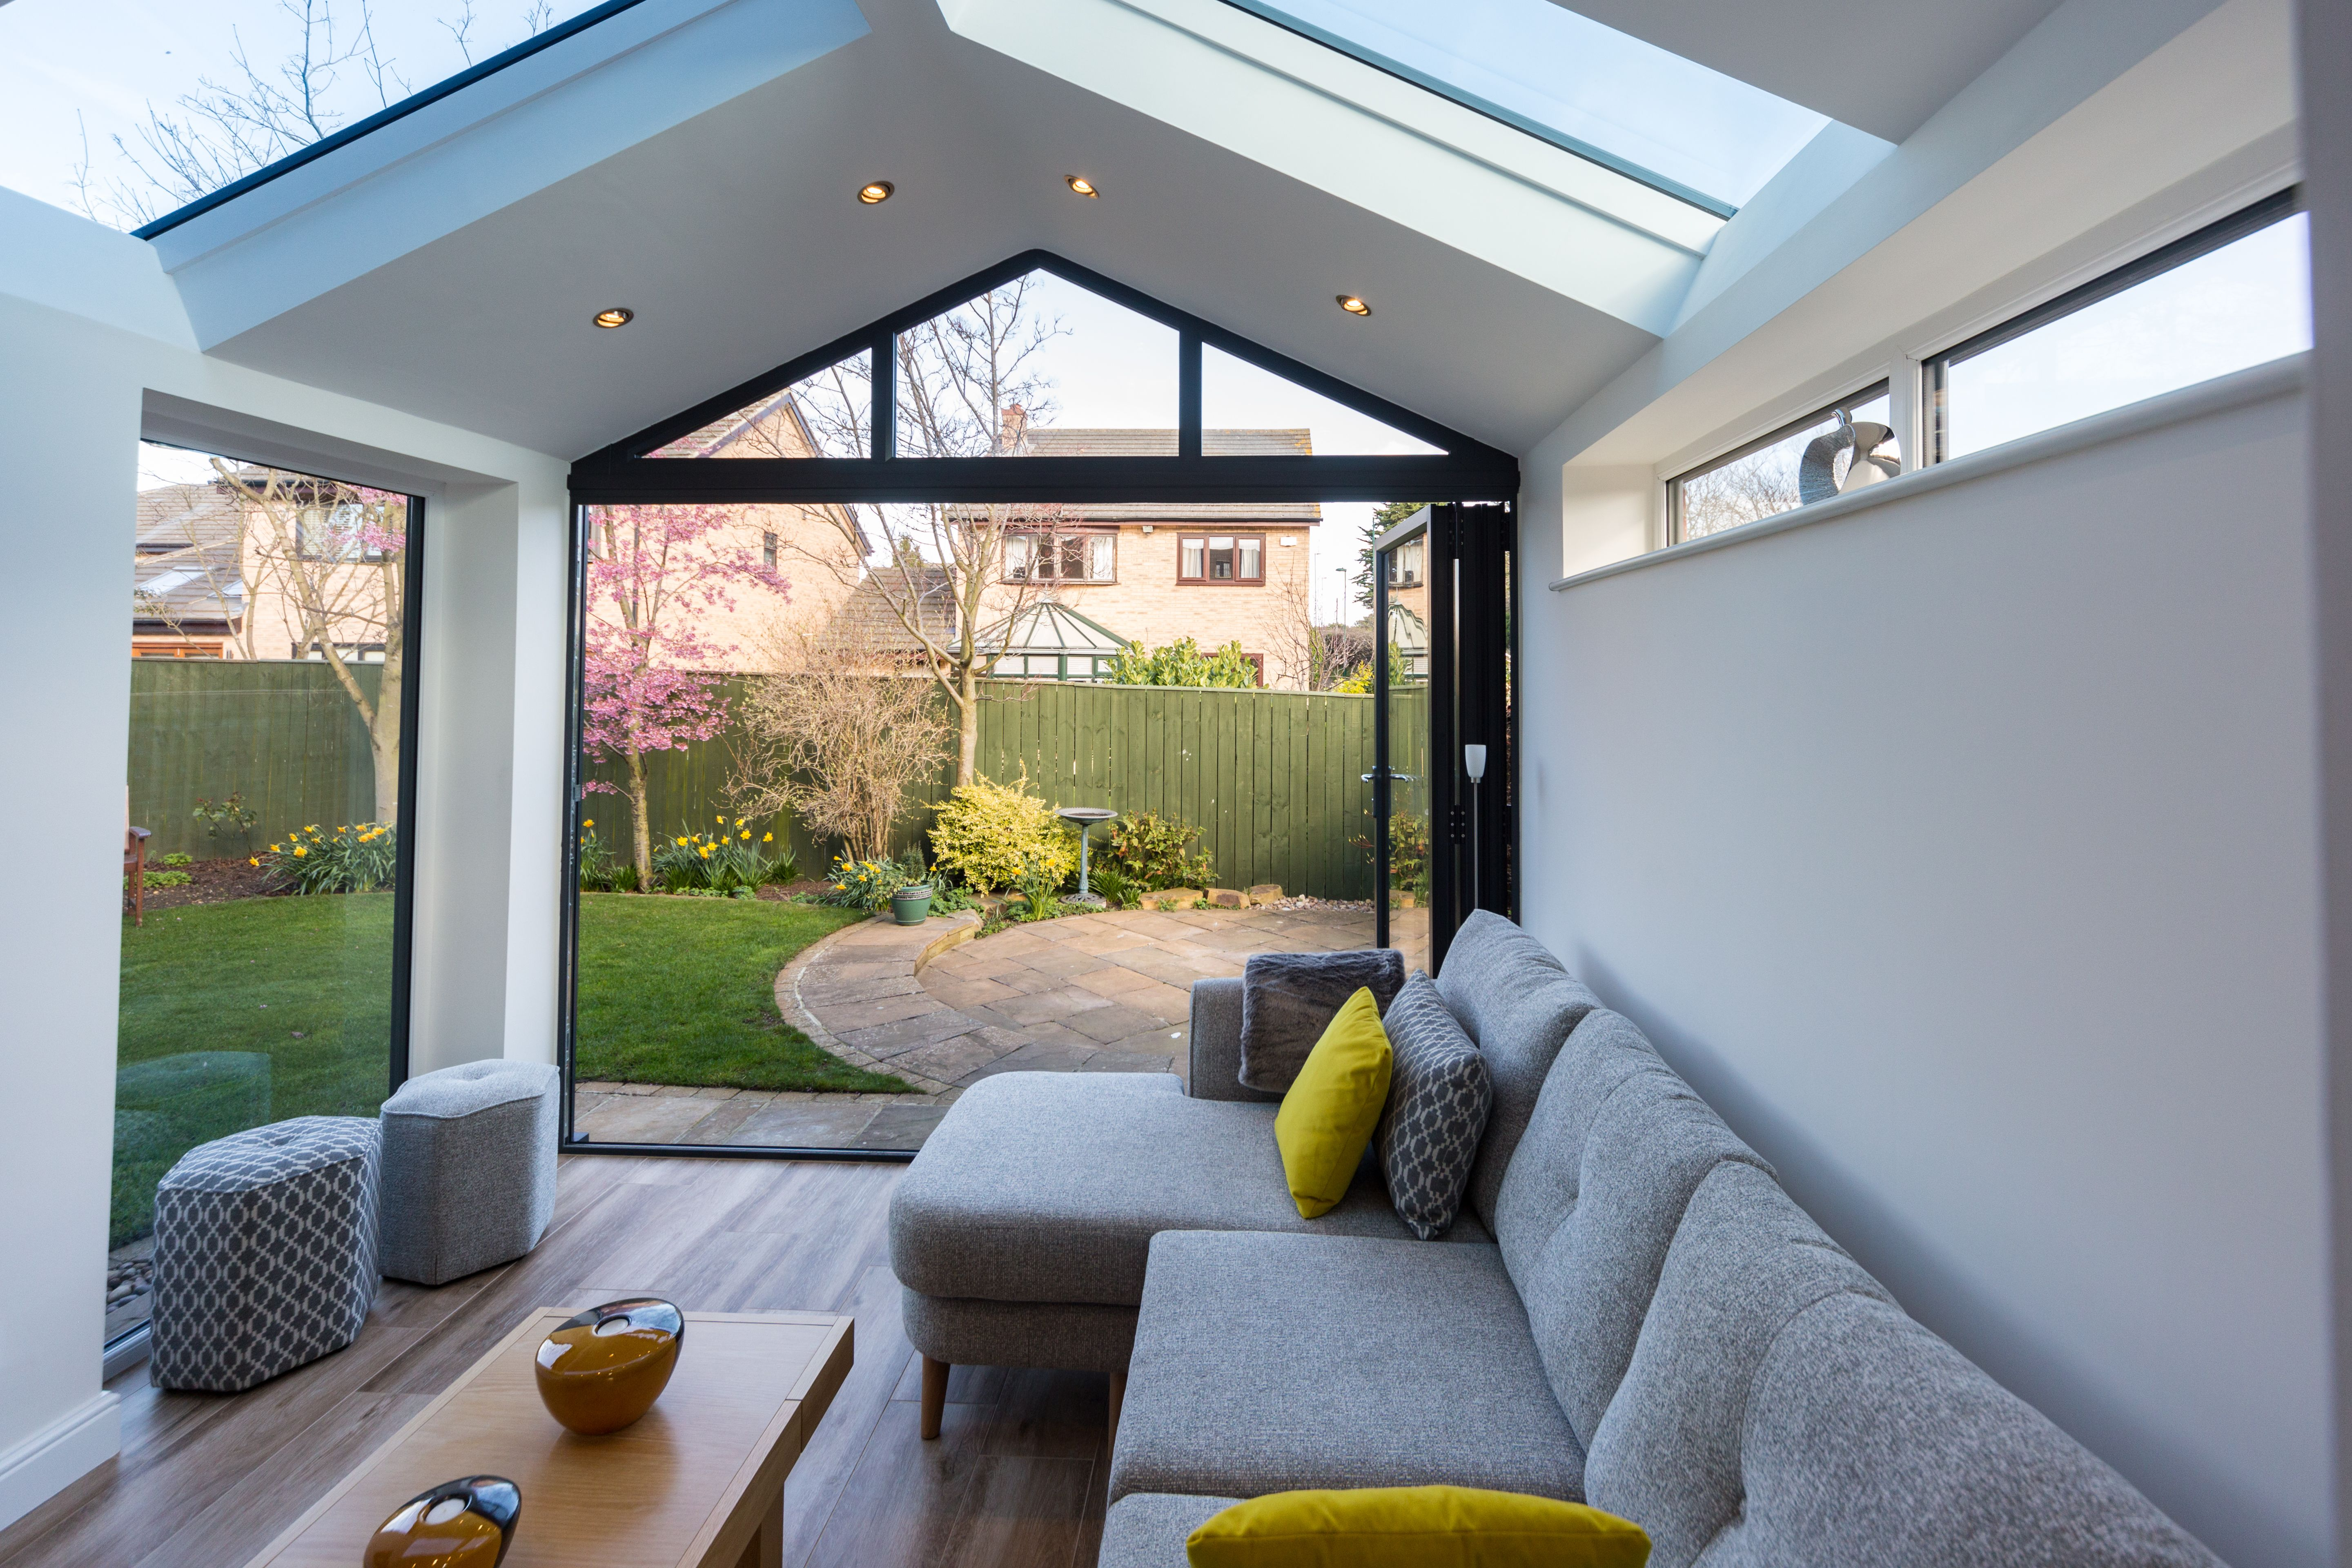 This beautiful Ultraroof house extension features full length glass panels in the roof and stunning bi-fold doors that lead out into the garden.